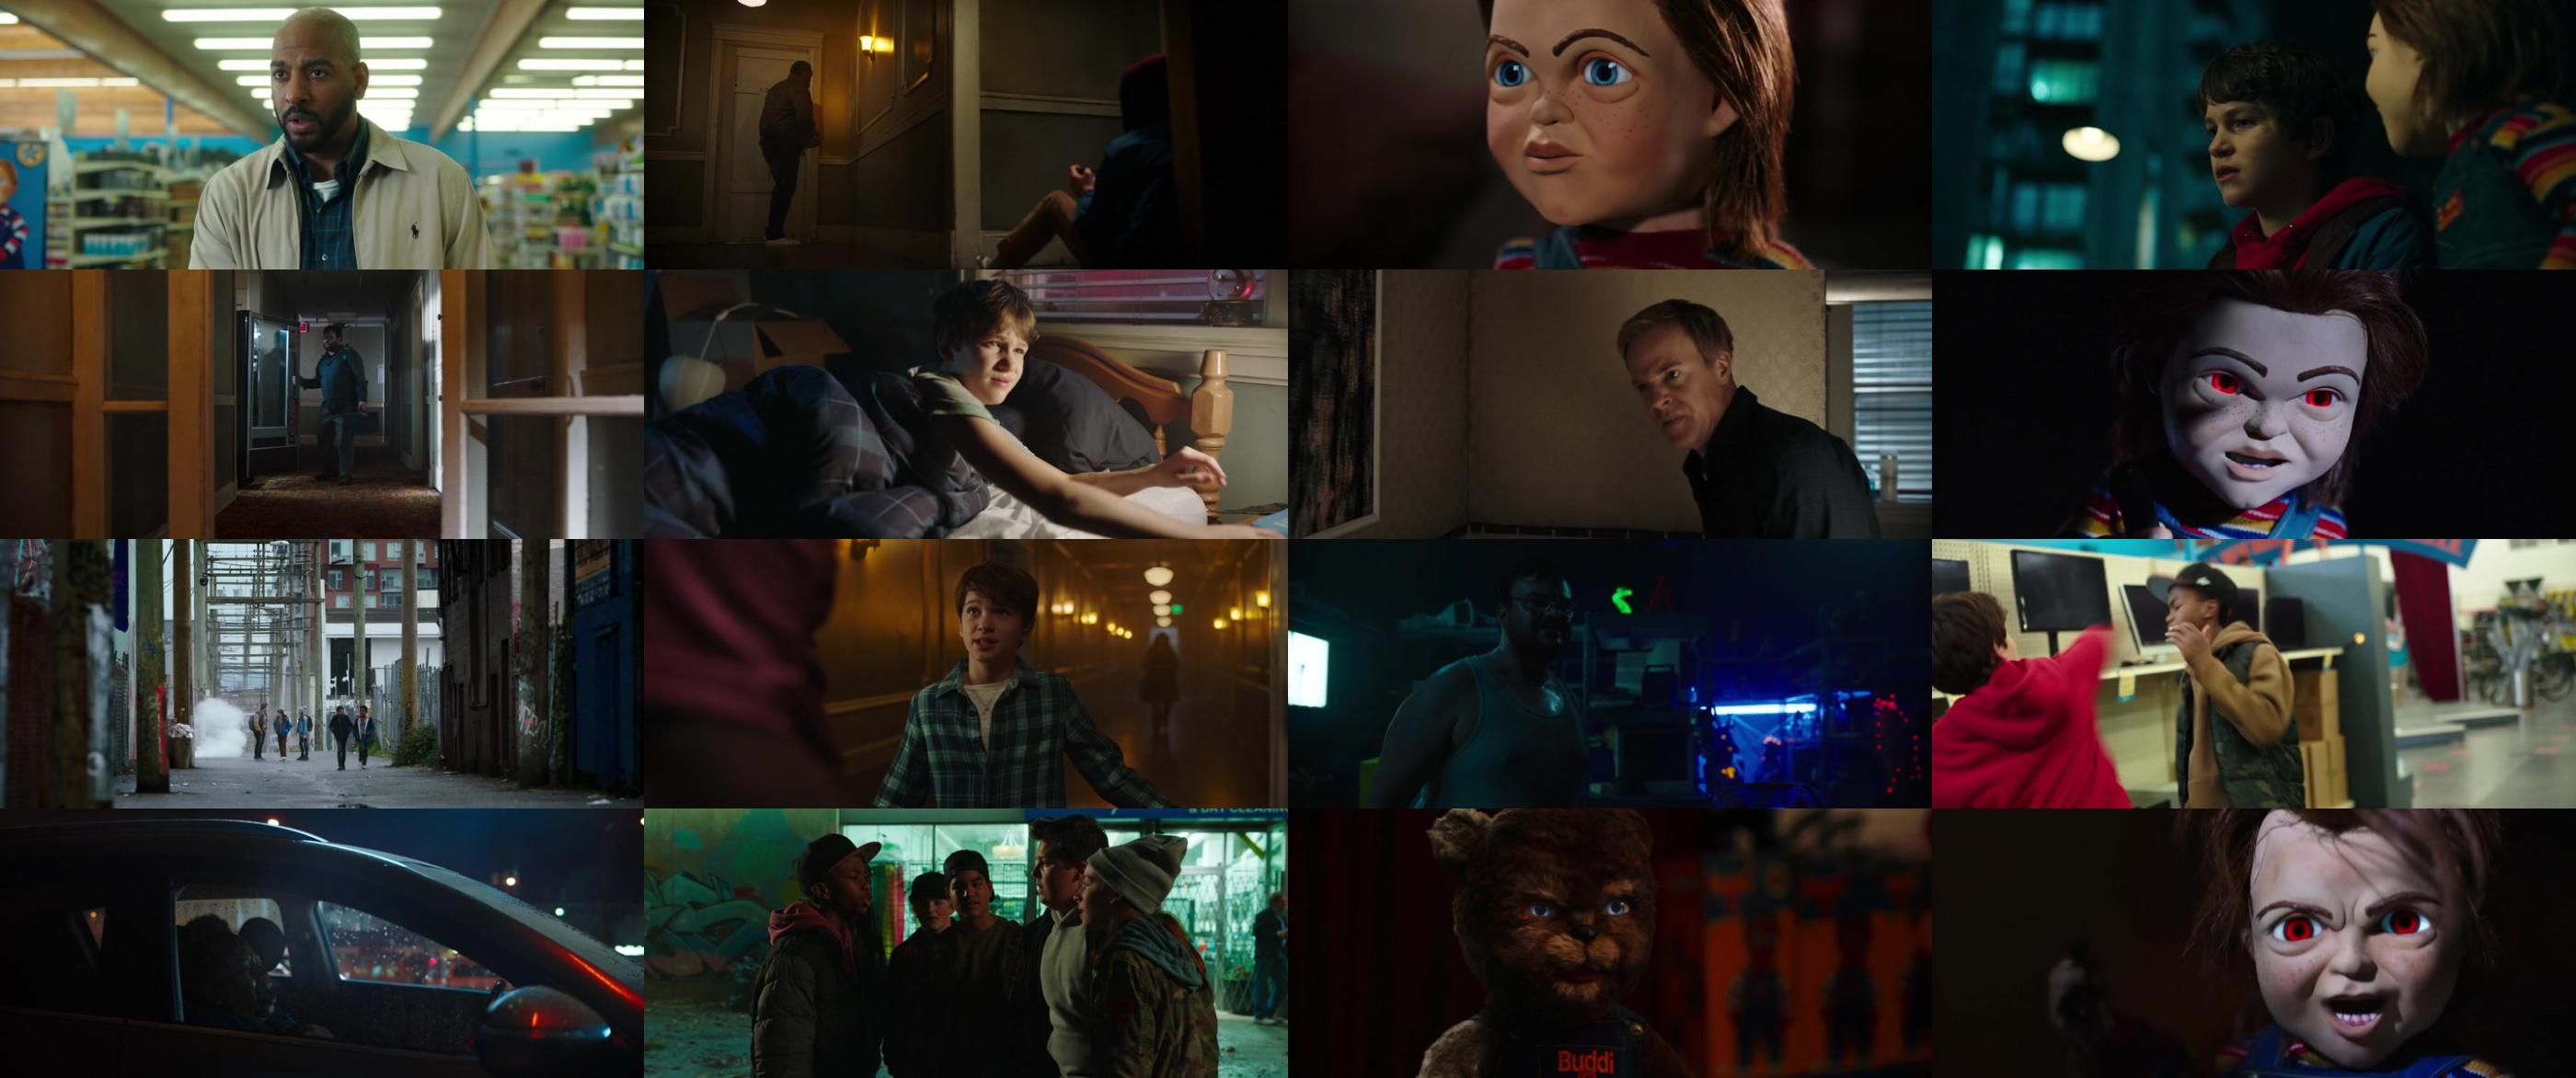 Childs Play 2019 WEB DL x264 FGT